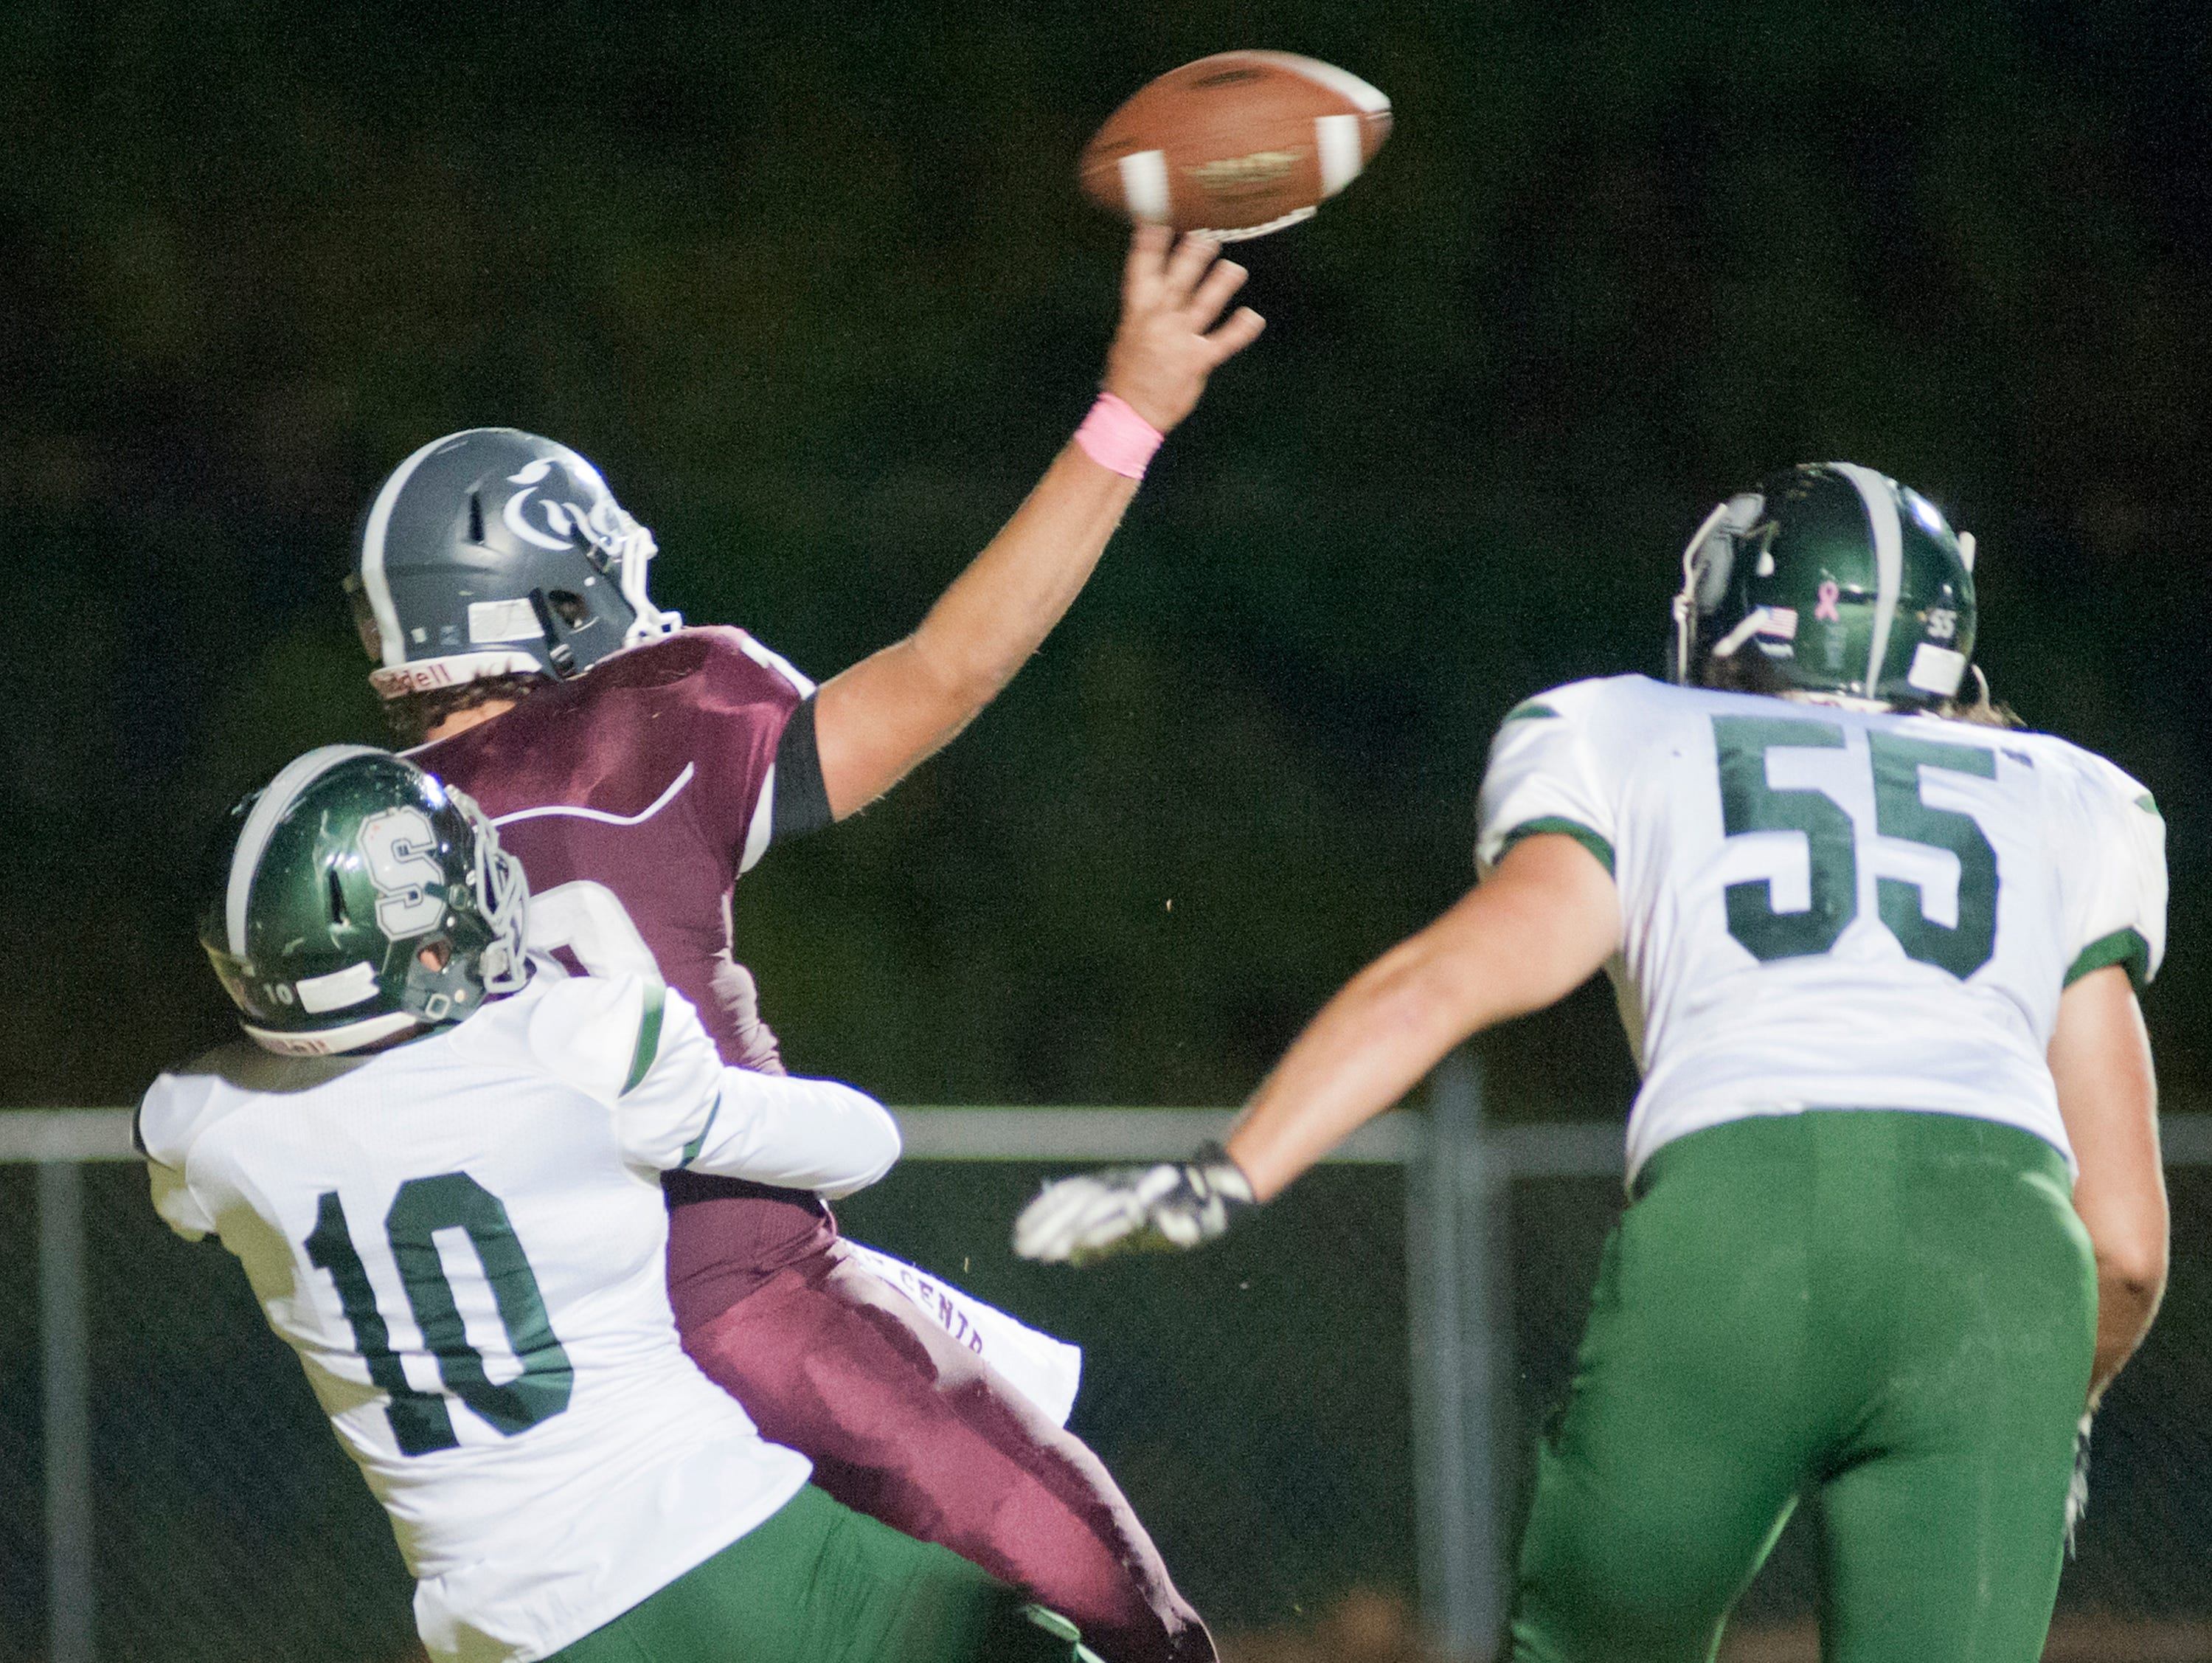 In the end sone, South Oldham linebacker Cade White wraps his arms around Bullitt Central quarterback Jacob Robertson but Robertson is able to get the ball off. At right is South Oldham defensive lineman Jack Harold. Oct. 12, 2018